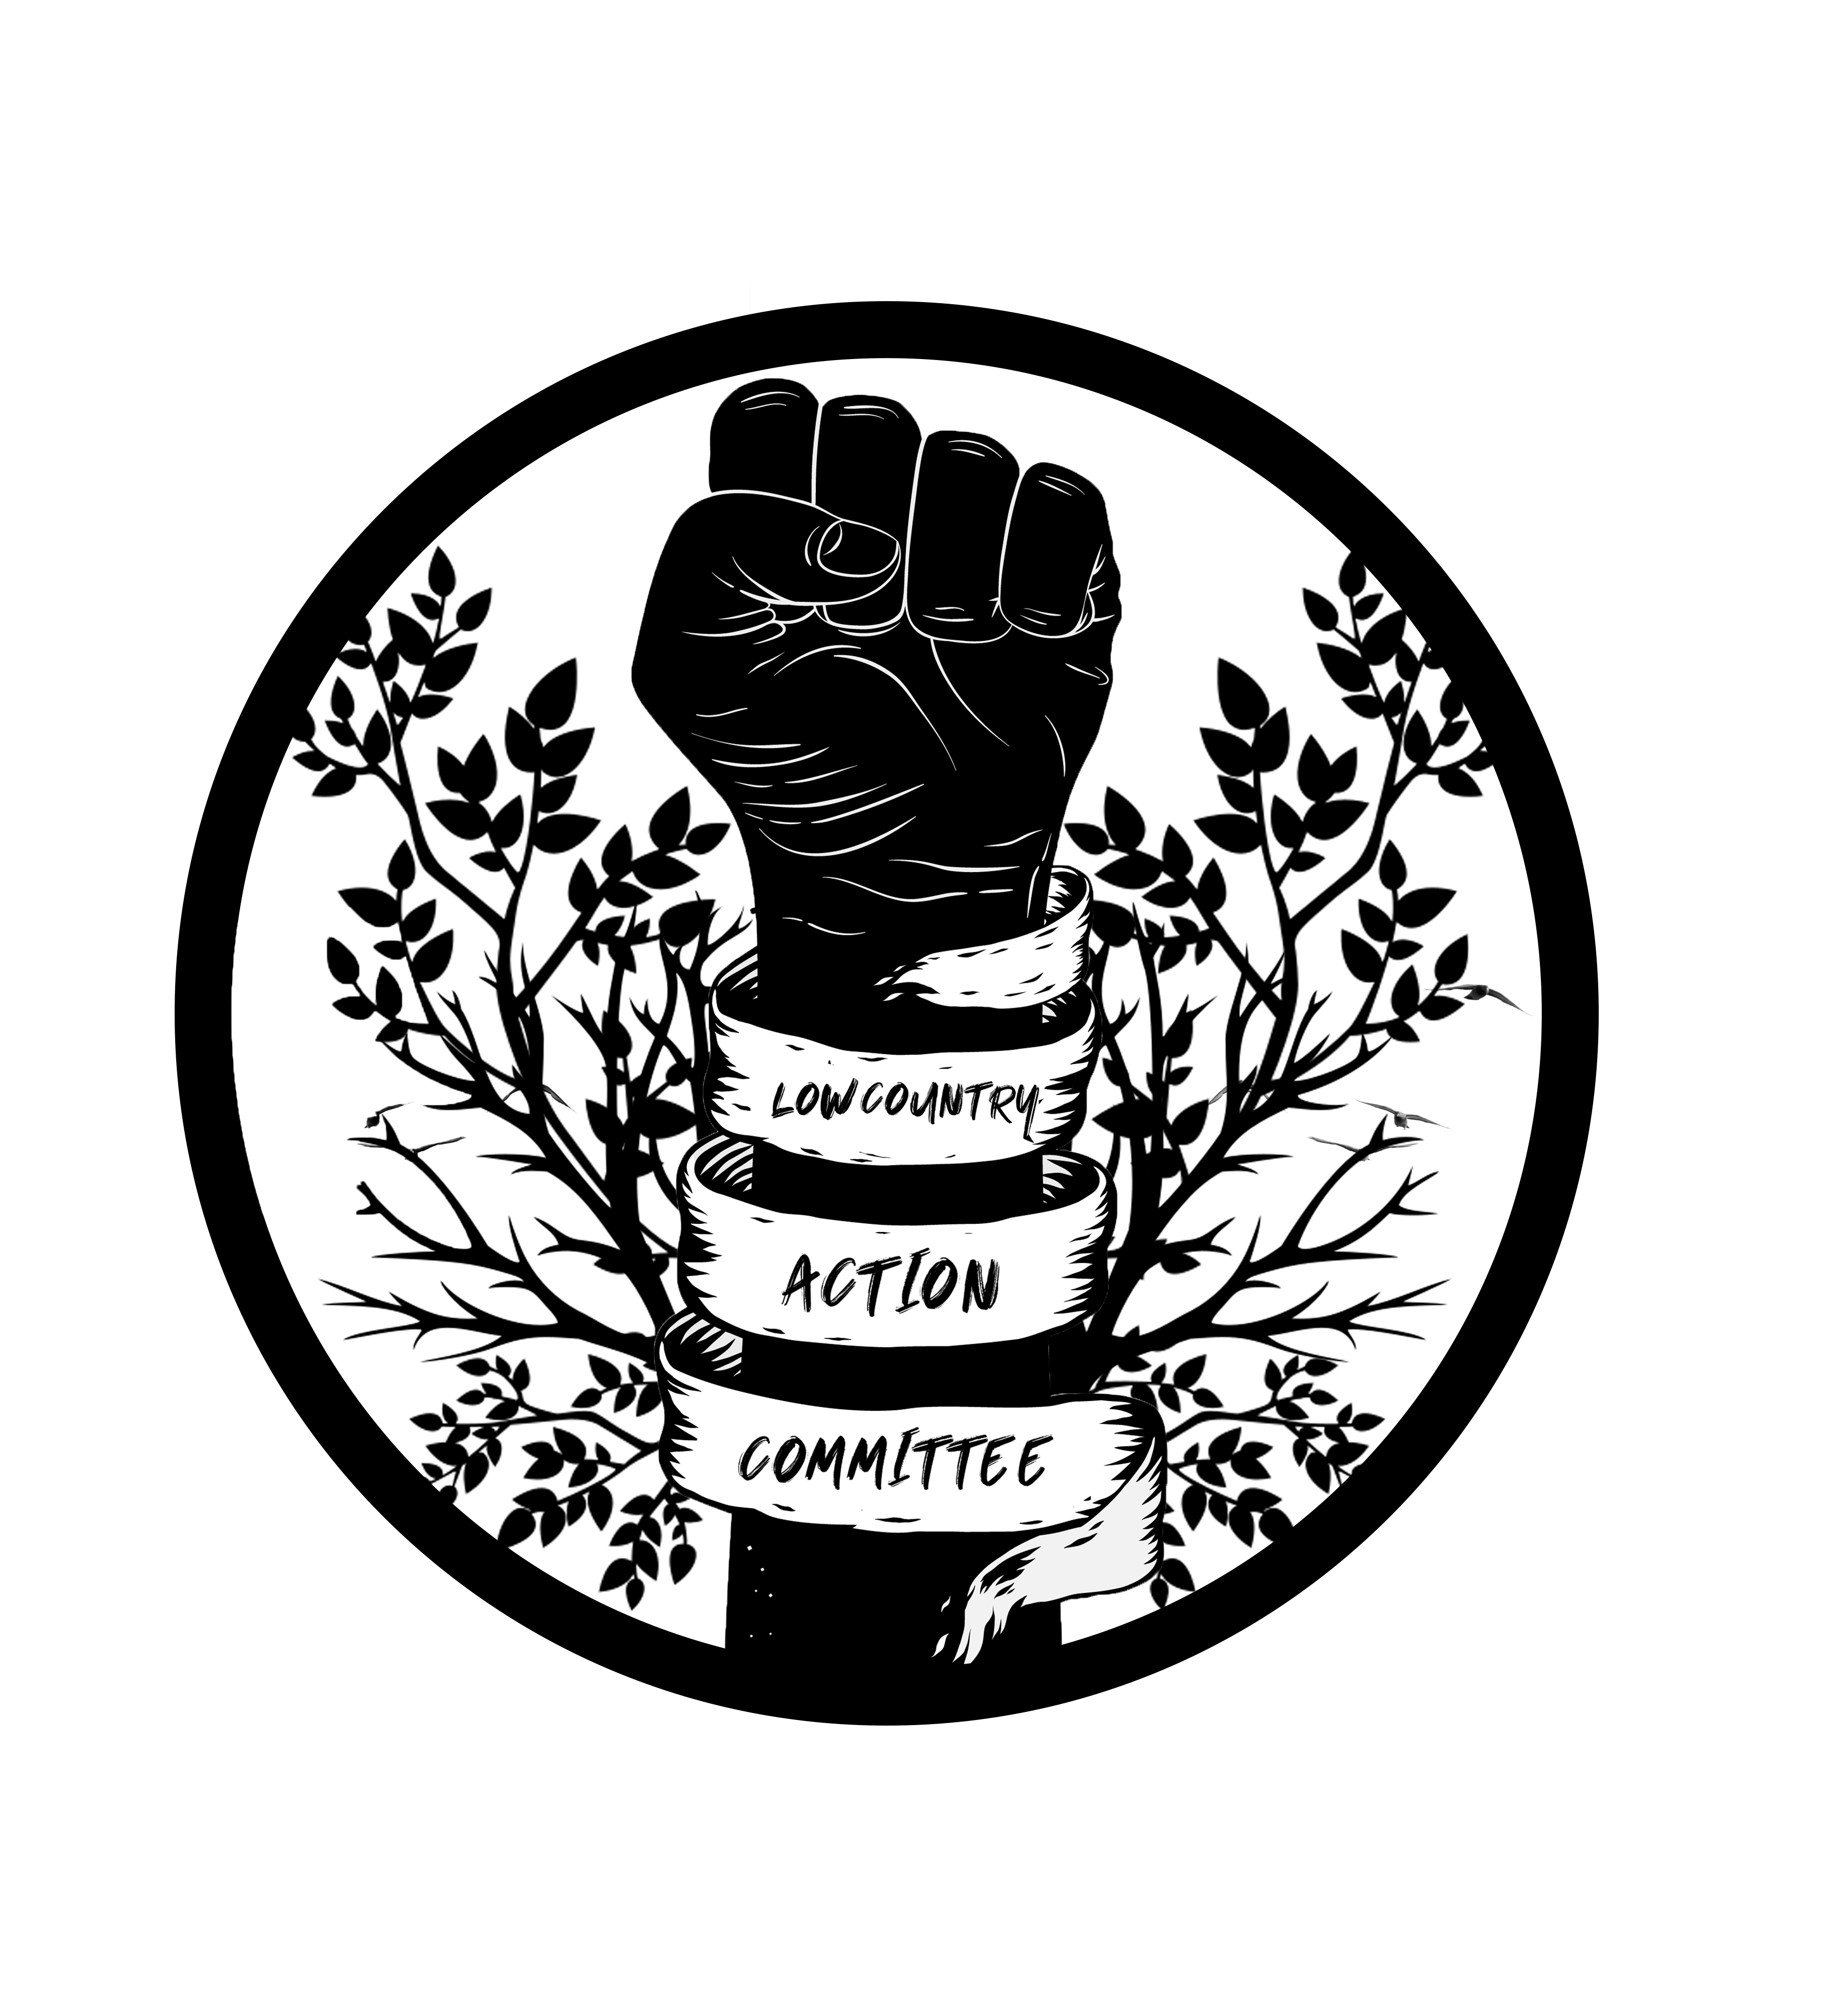 Lowcountry Action Committee fist wrapped in a ribbon surrounded by branches logo